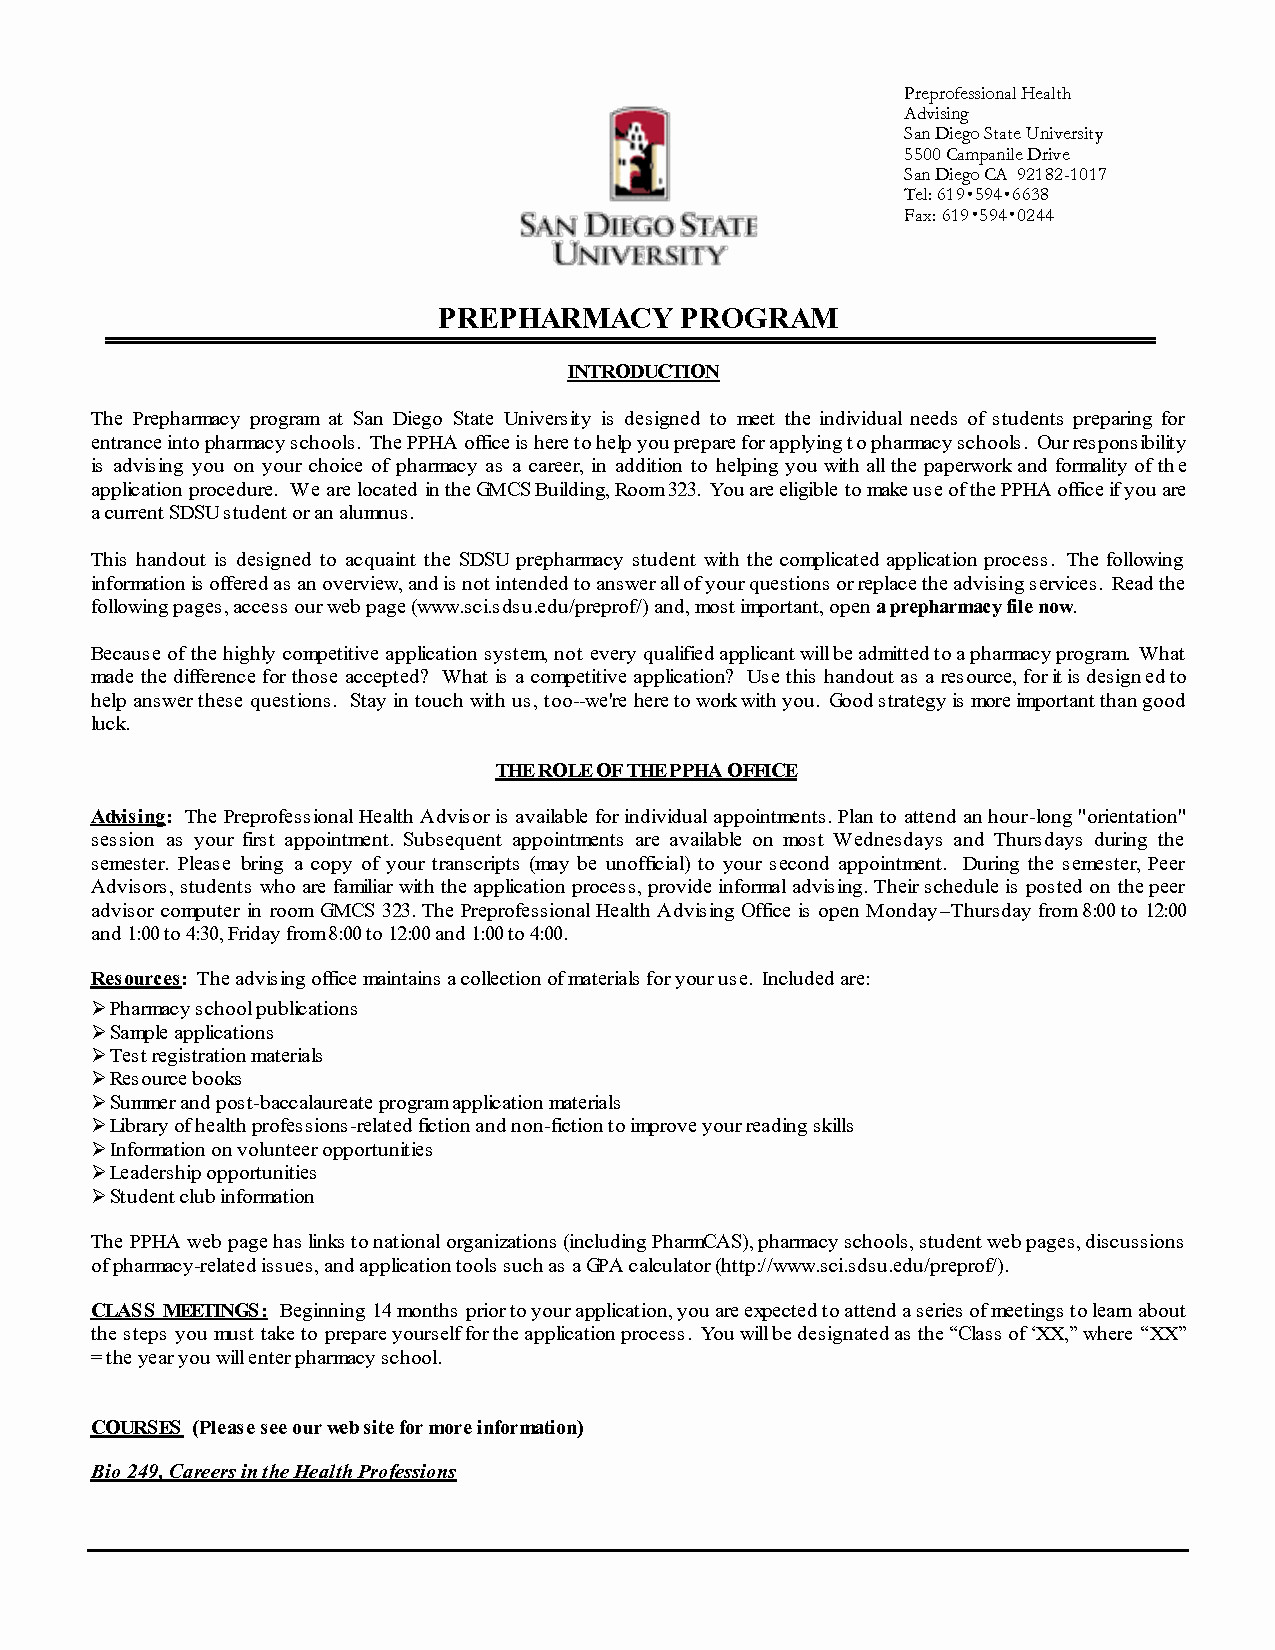 Law School Letter Of Recommendation Template - Law School Application Resume Beautiful Cover Letter Example for